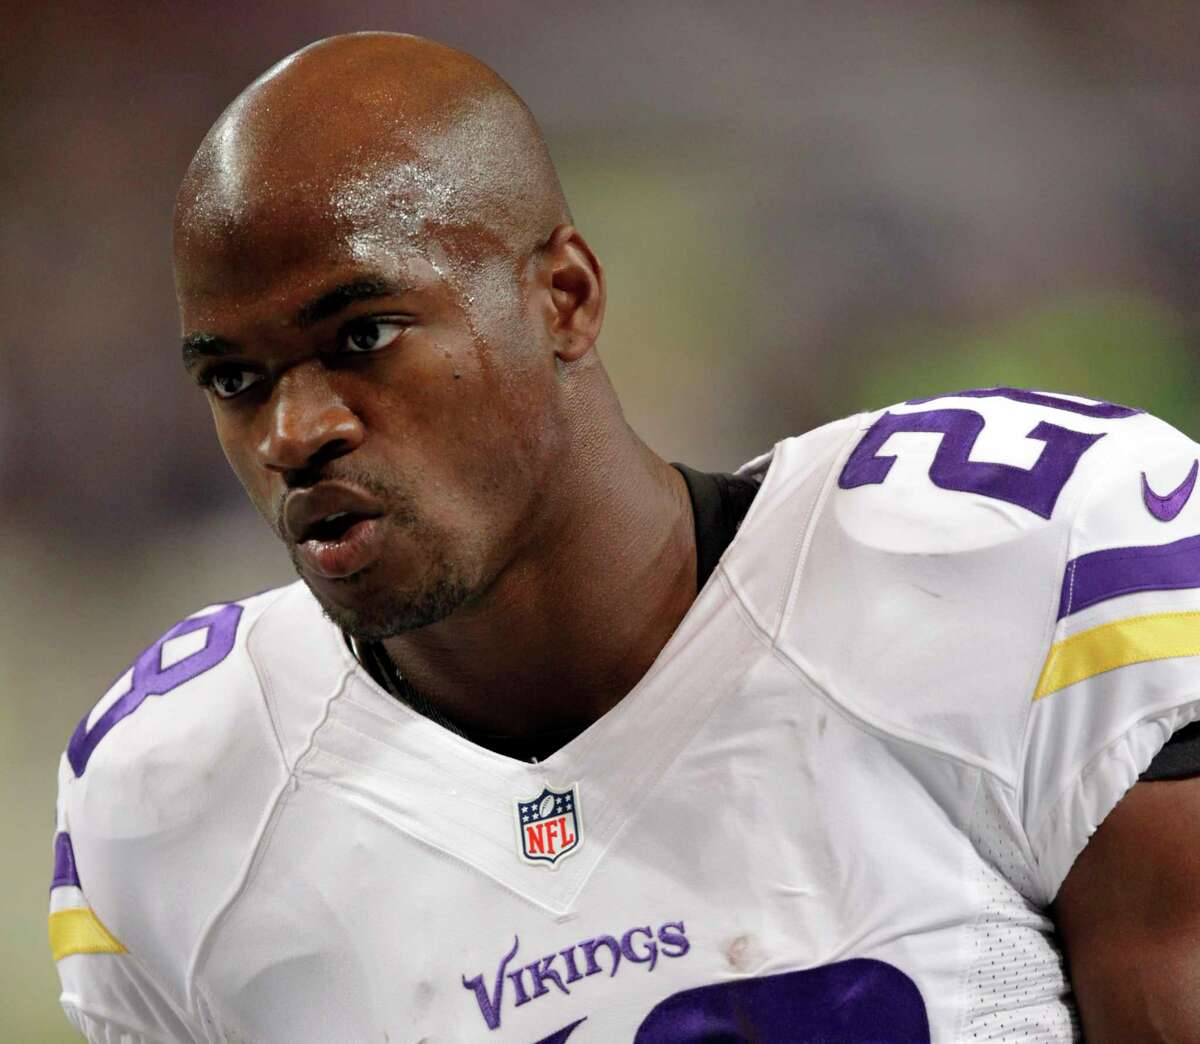 The Vikings reinstated Adrian Peterson on Monday.